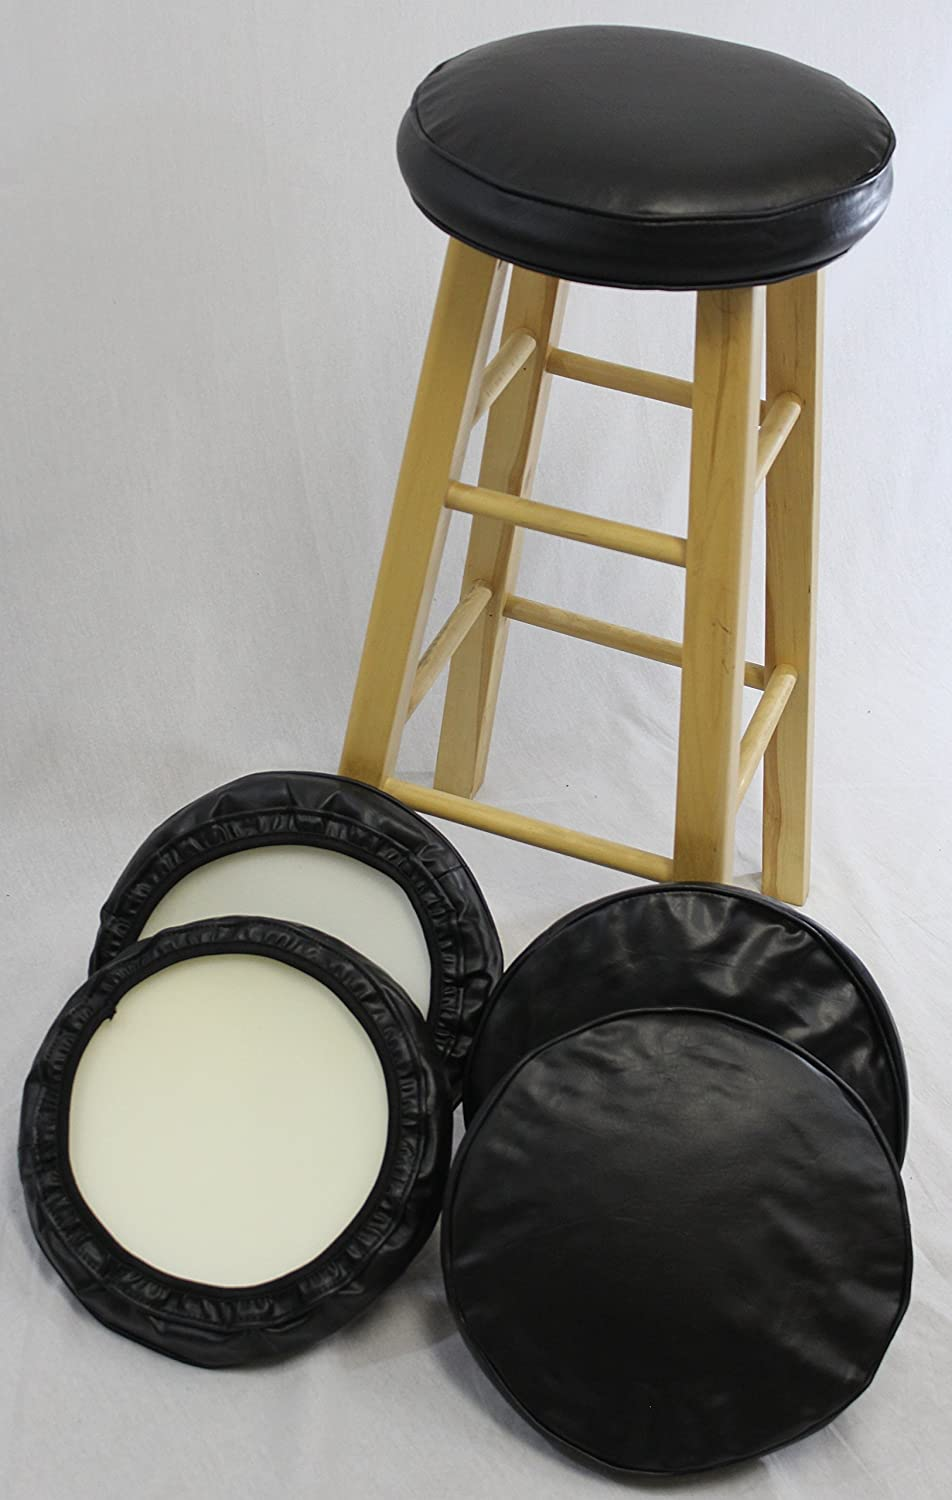 eHemco Bar Stool Cover With Foam Set of 4 : kitchen stool covers - islam-shia.org